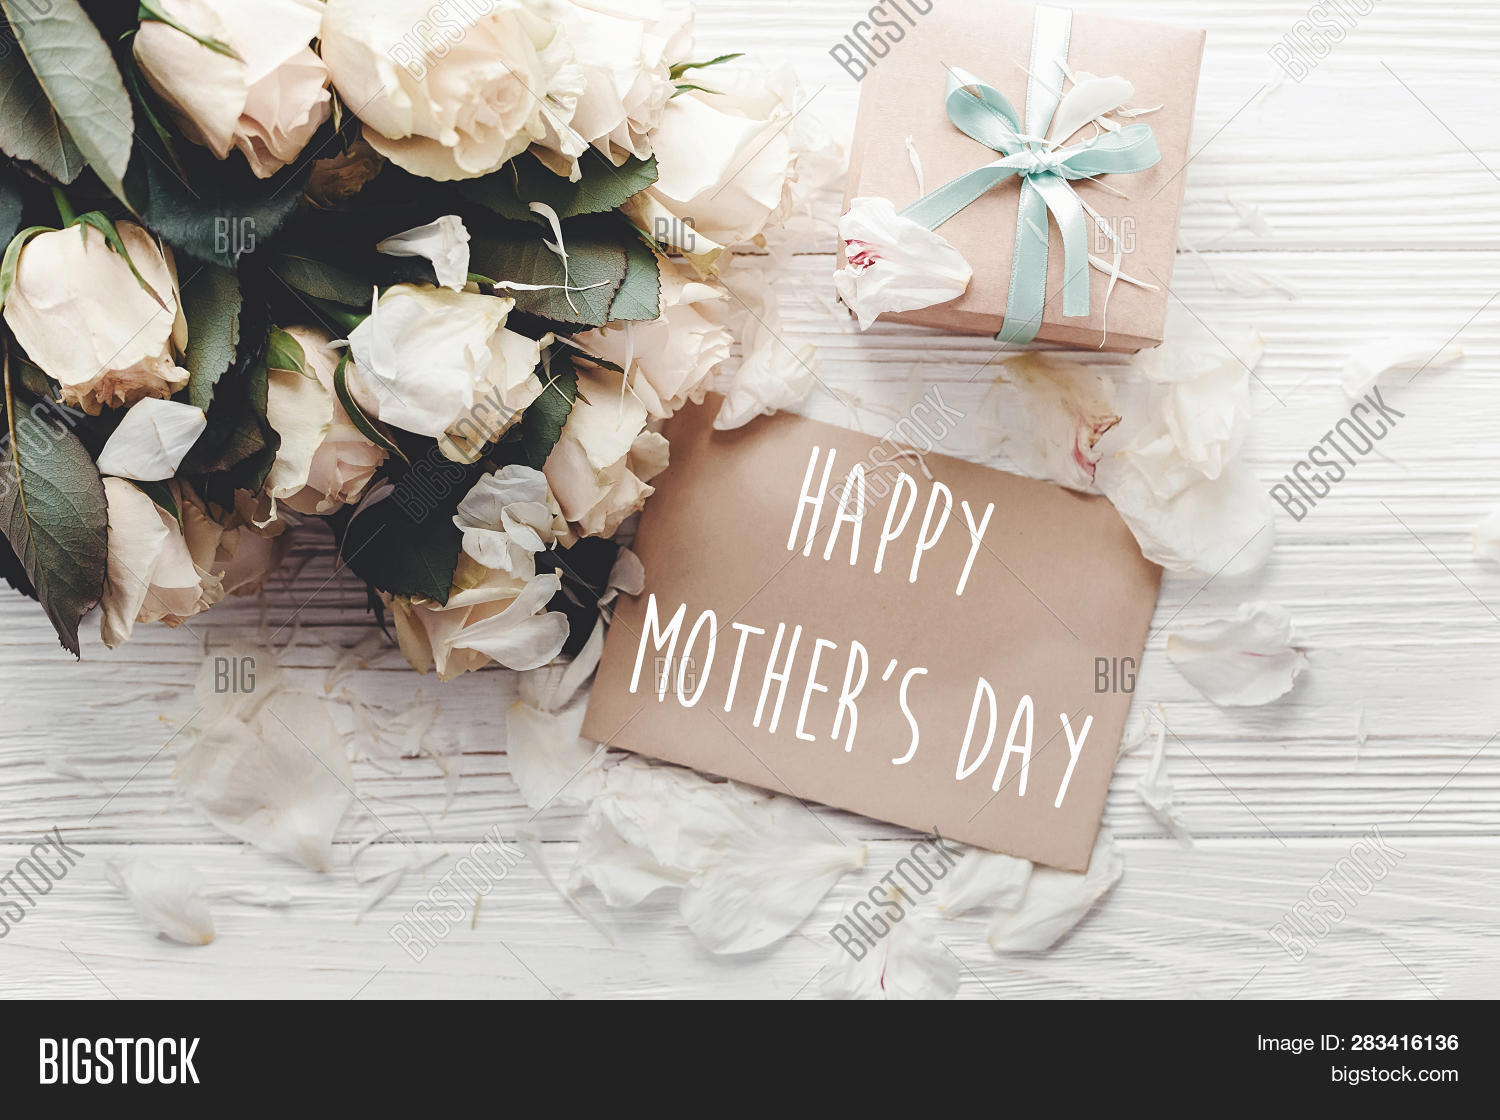 art,background,beautiful,beauty,bloom,blossom,bouquet,box,calligraphy,card,celebration,concept,craft,creative,day,design,flat,floral,flowers,gift,greeting,happy,holiday,inscription,lay,lifestyle,love,message,modern,mom,mother,natural,petals,pink,postcard,present,roses,rustic,season,sign,spring,stylish,table,text,trendy,typography,white,wooden,word